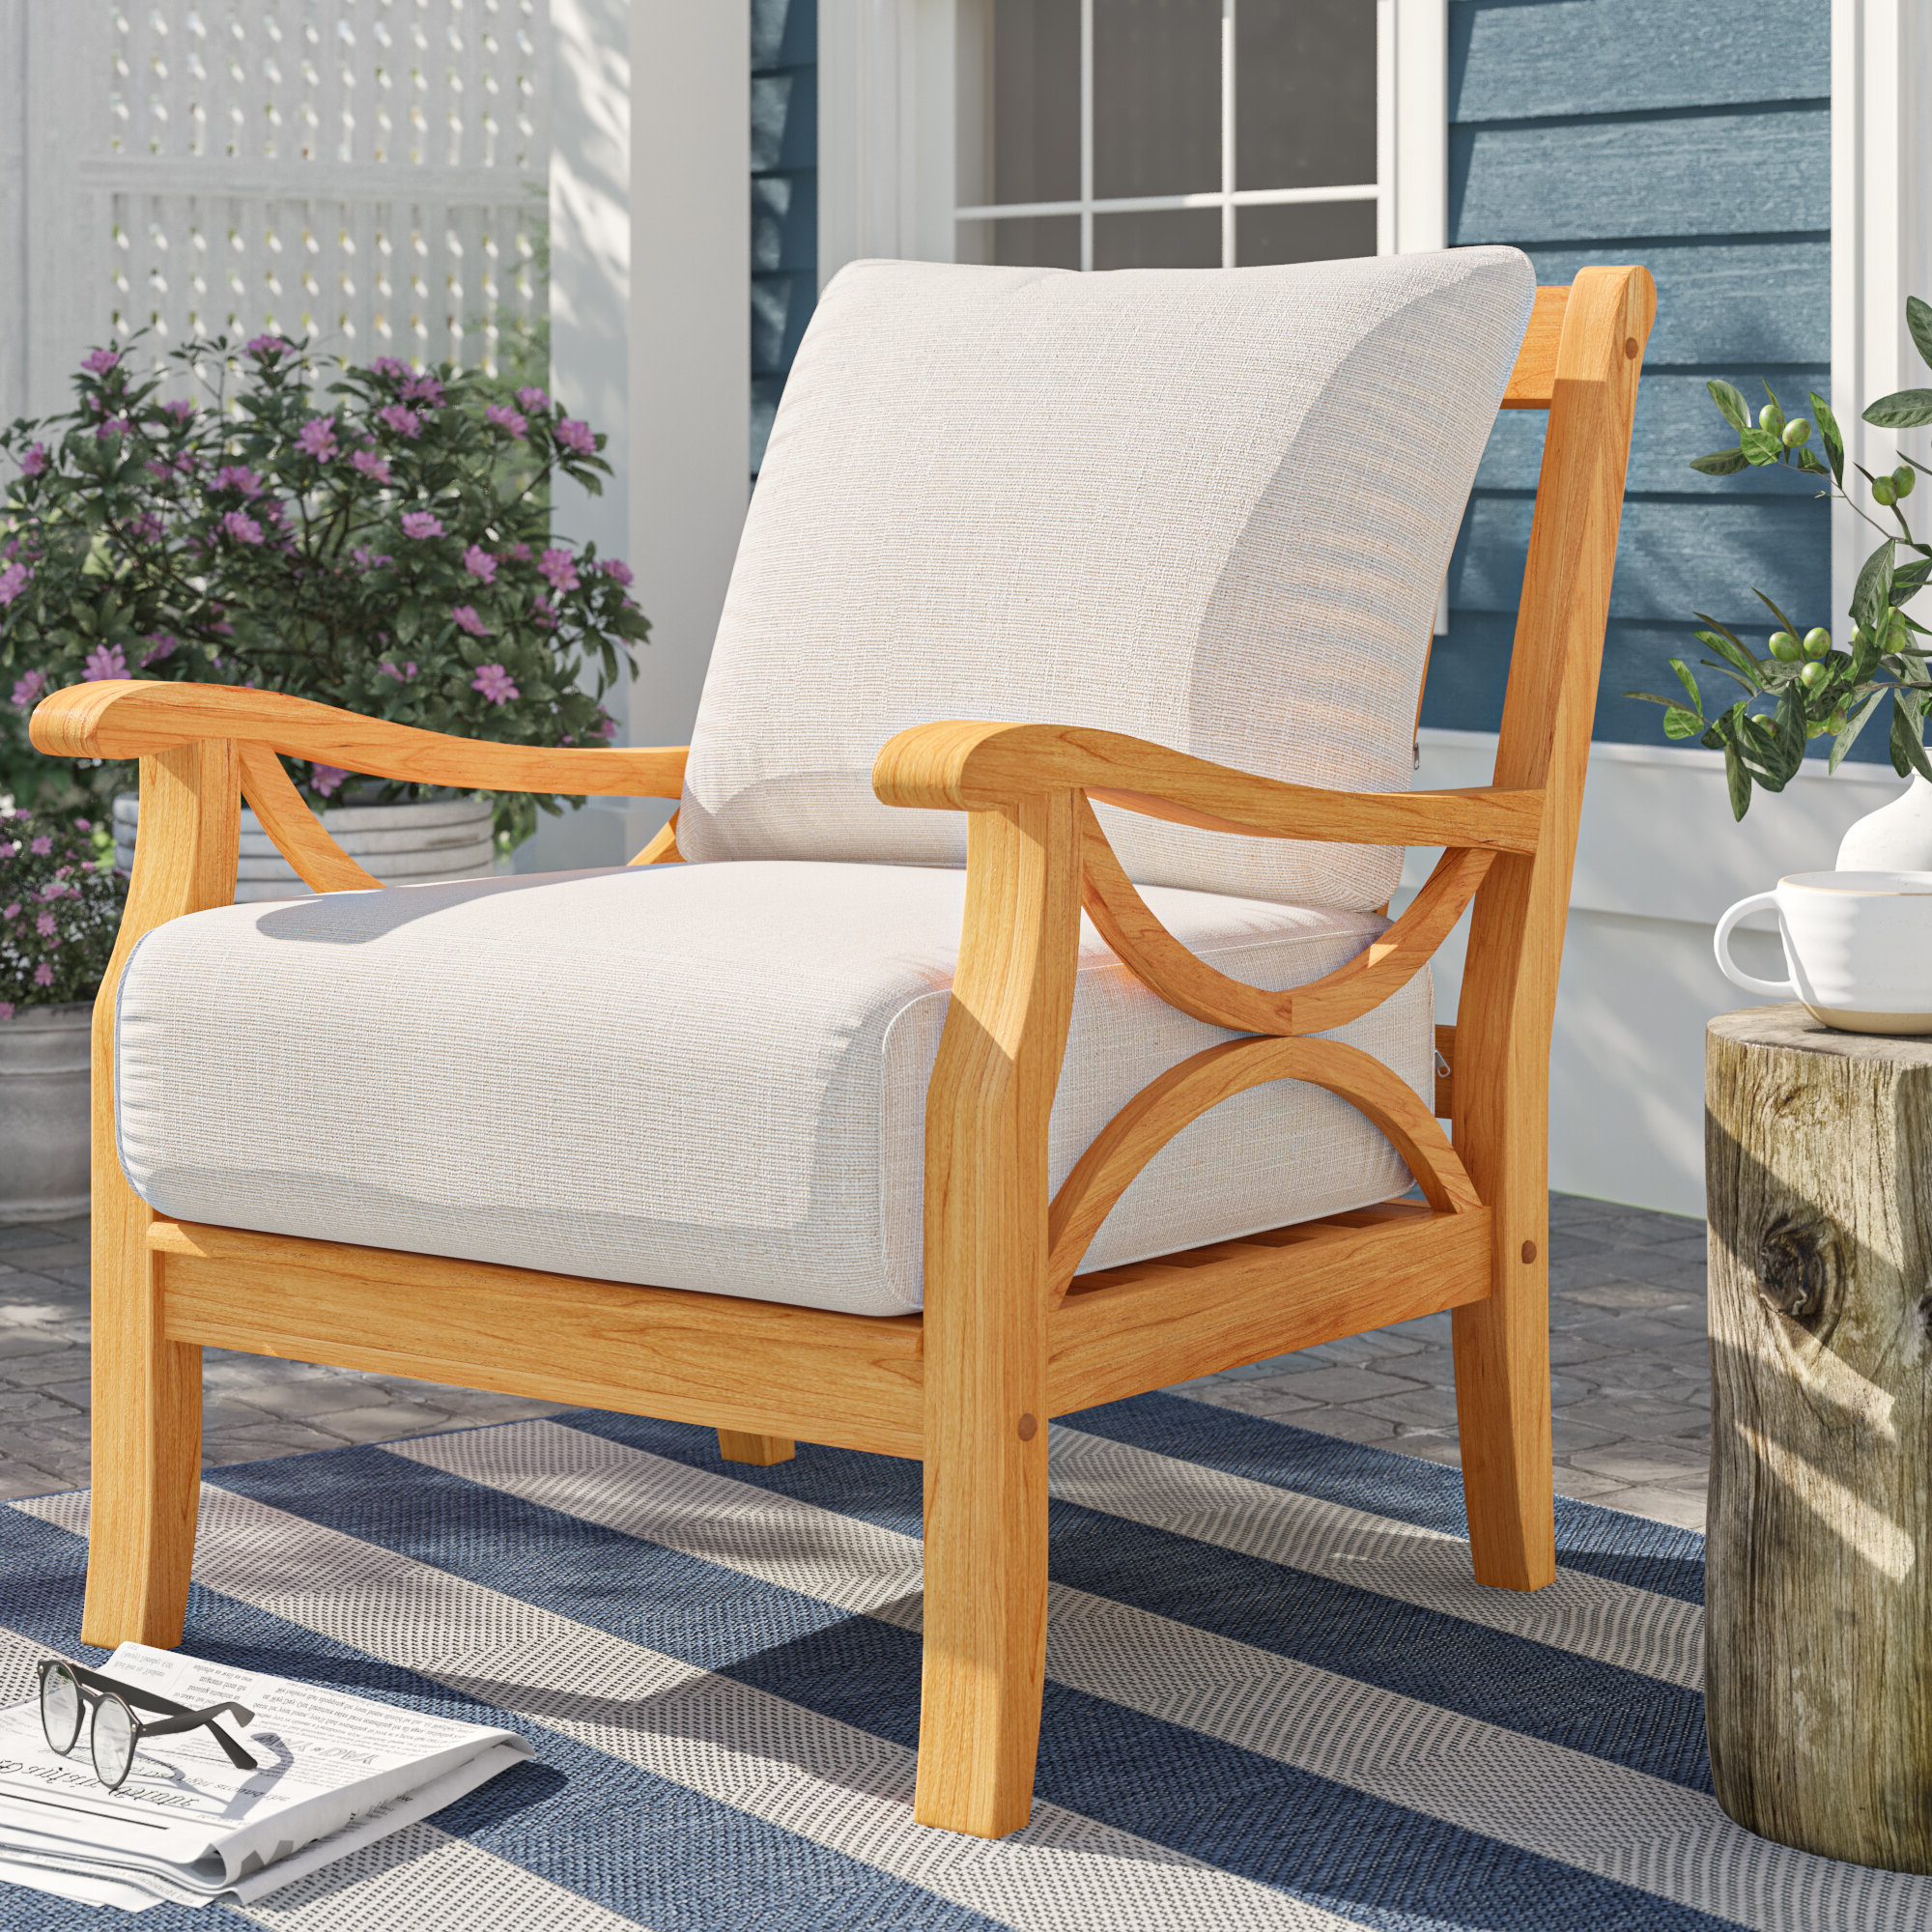 Brunswick Teak Patio Chair With Cushions With Regard To Trendy Baltic Patio Sofas With Cushions (View 12 of 25)